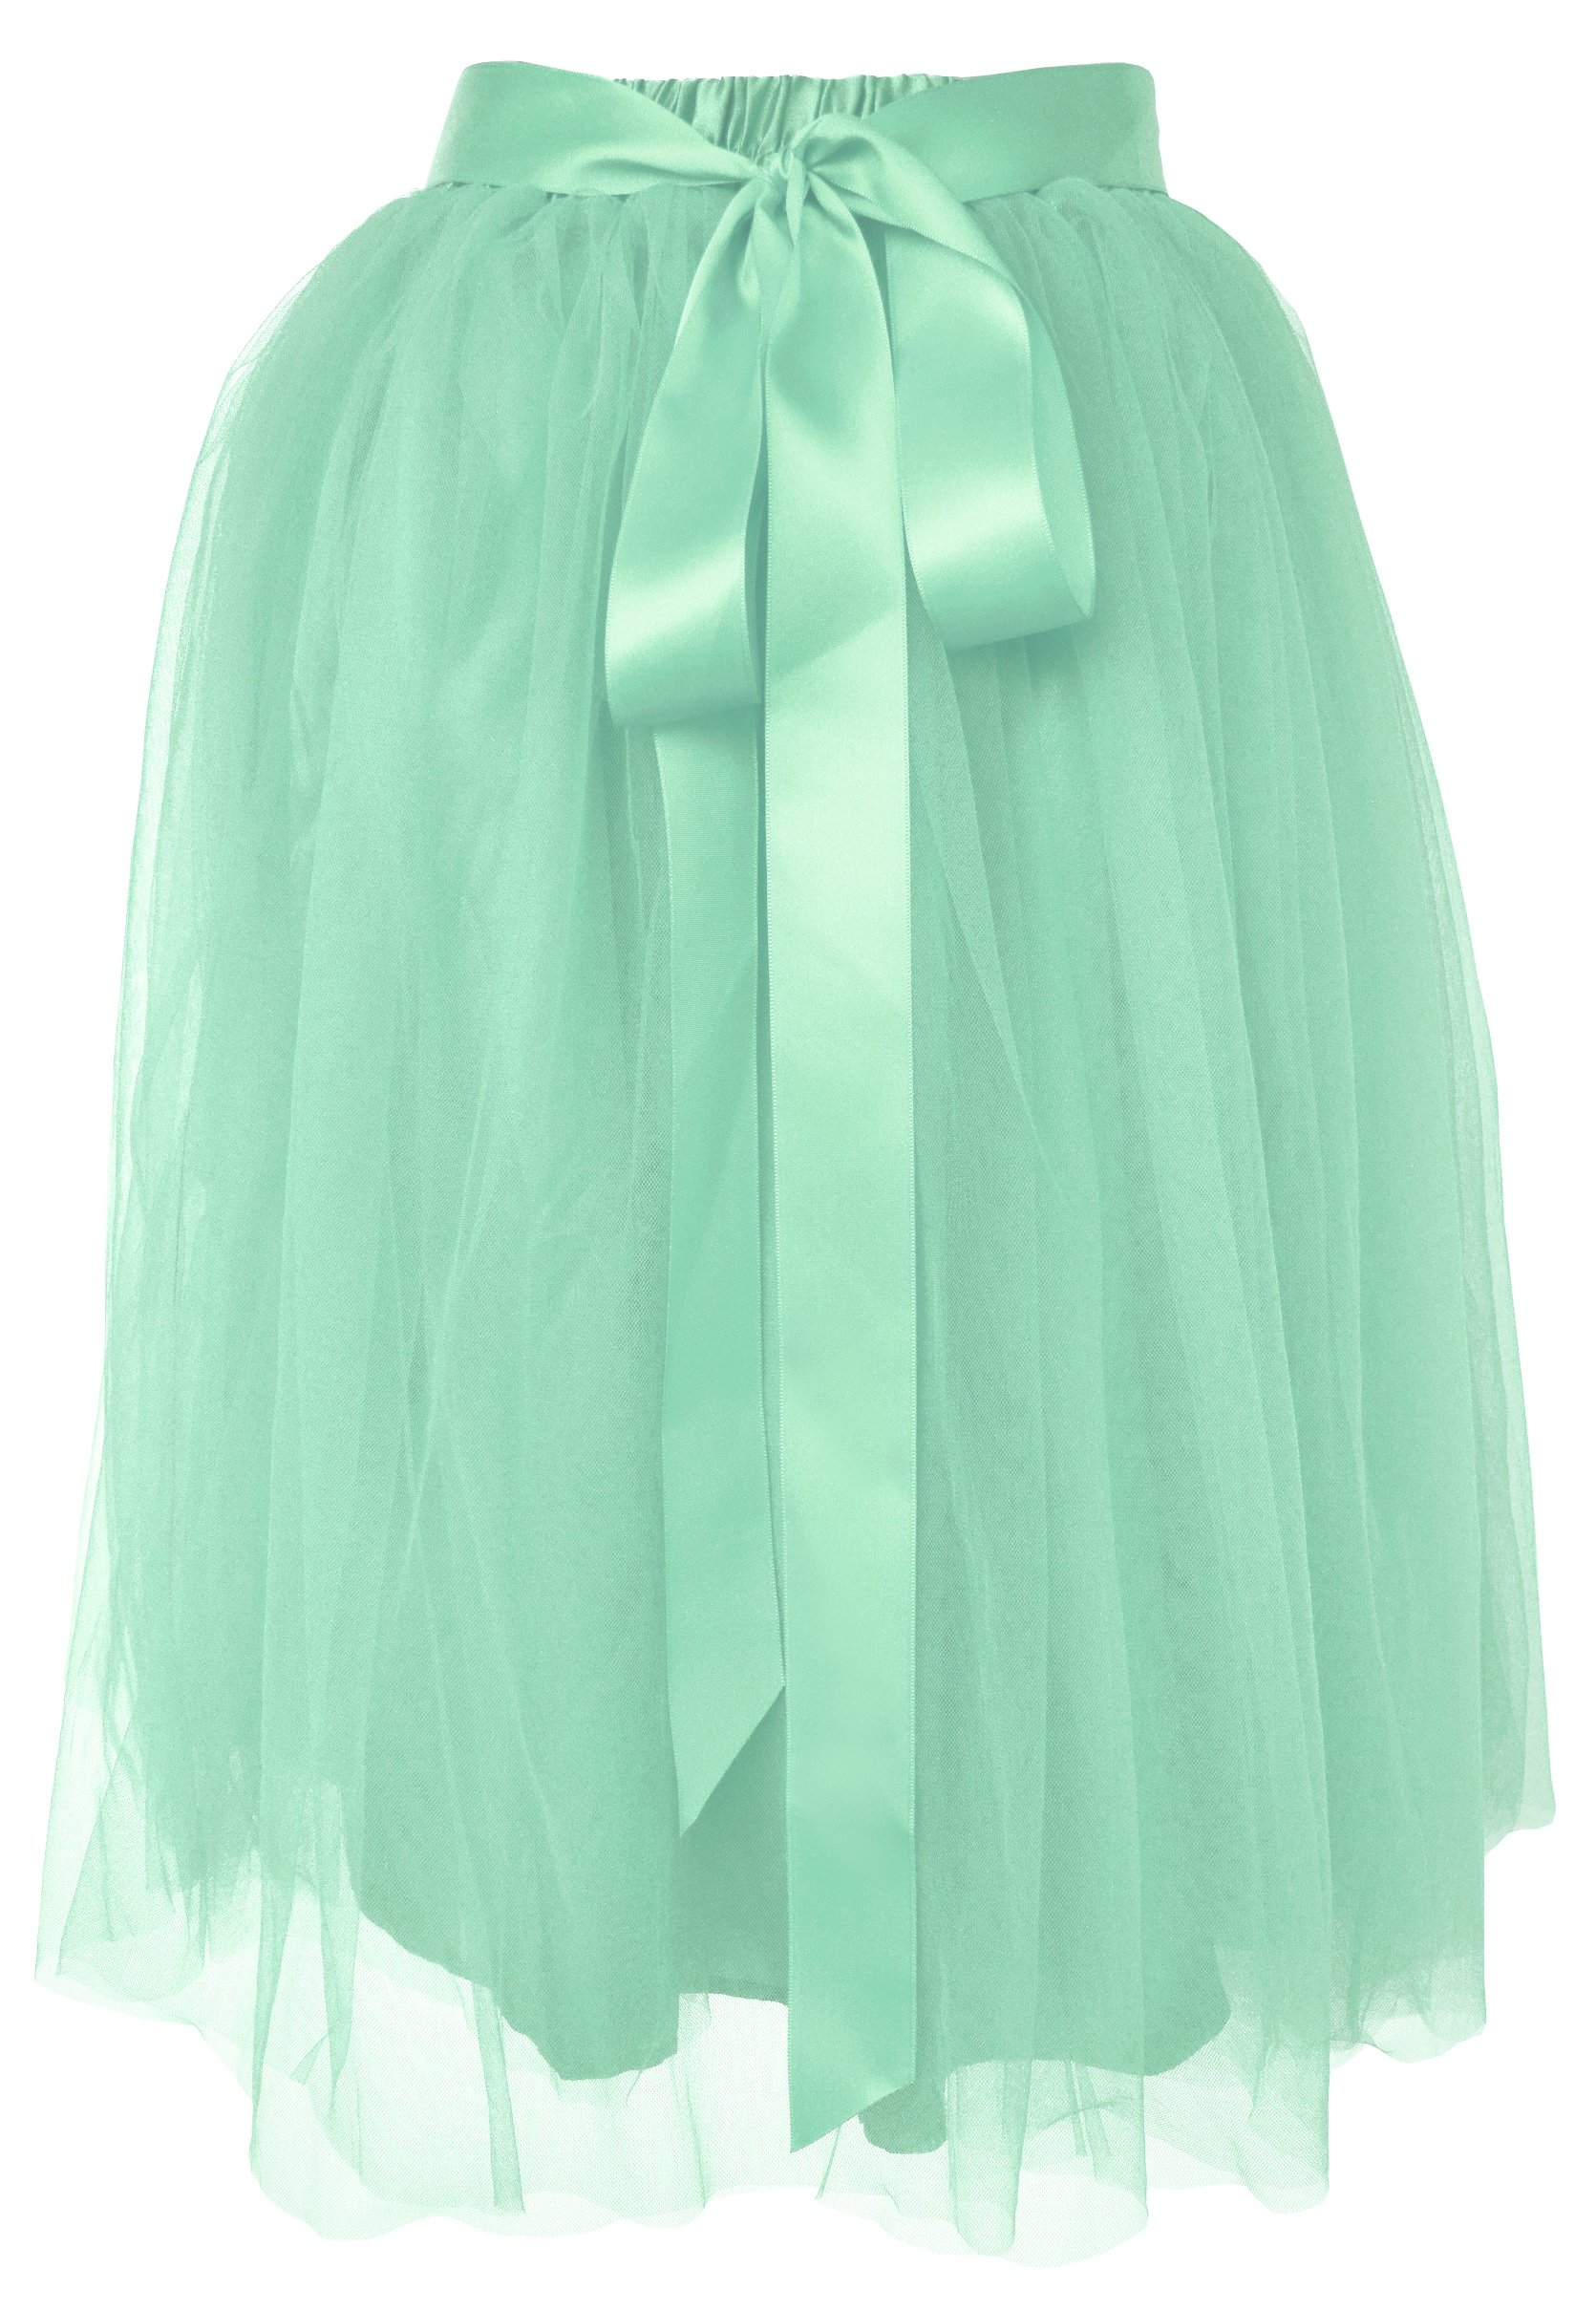 Dancina Women's Knee Length Tutu A Line Layered Tulle Skirt Size Regular 2-18 Pastel Mint